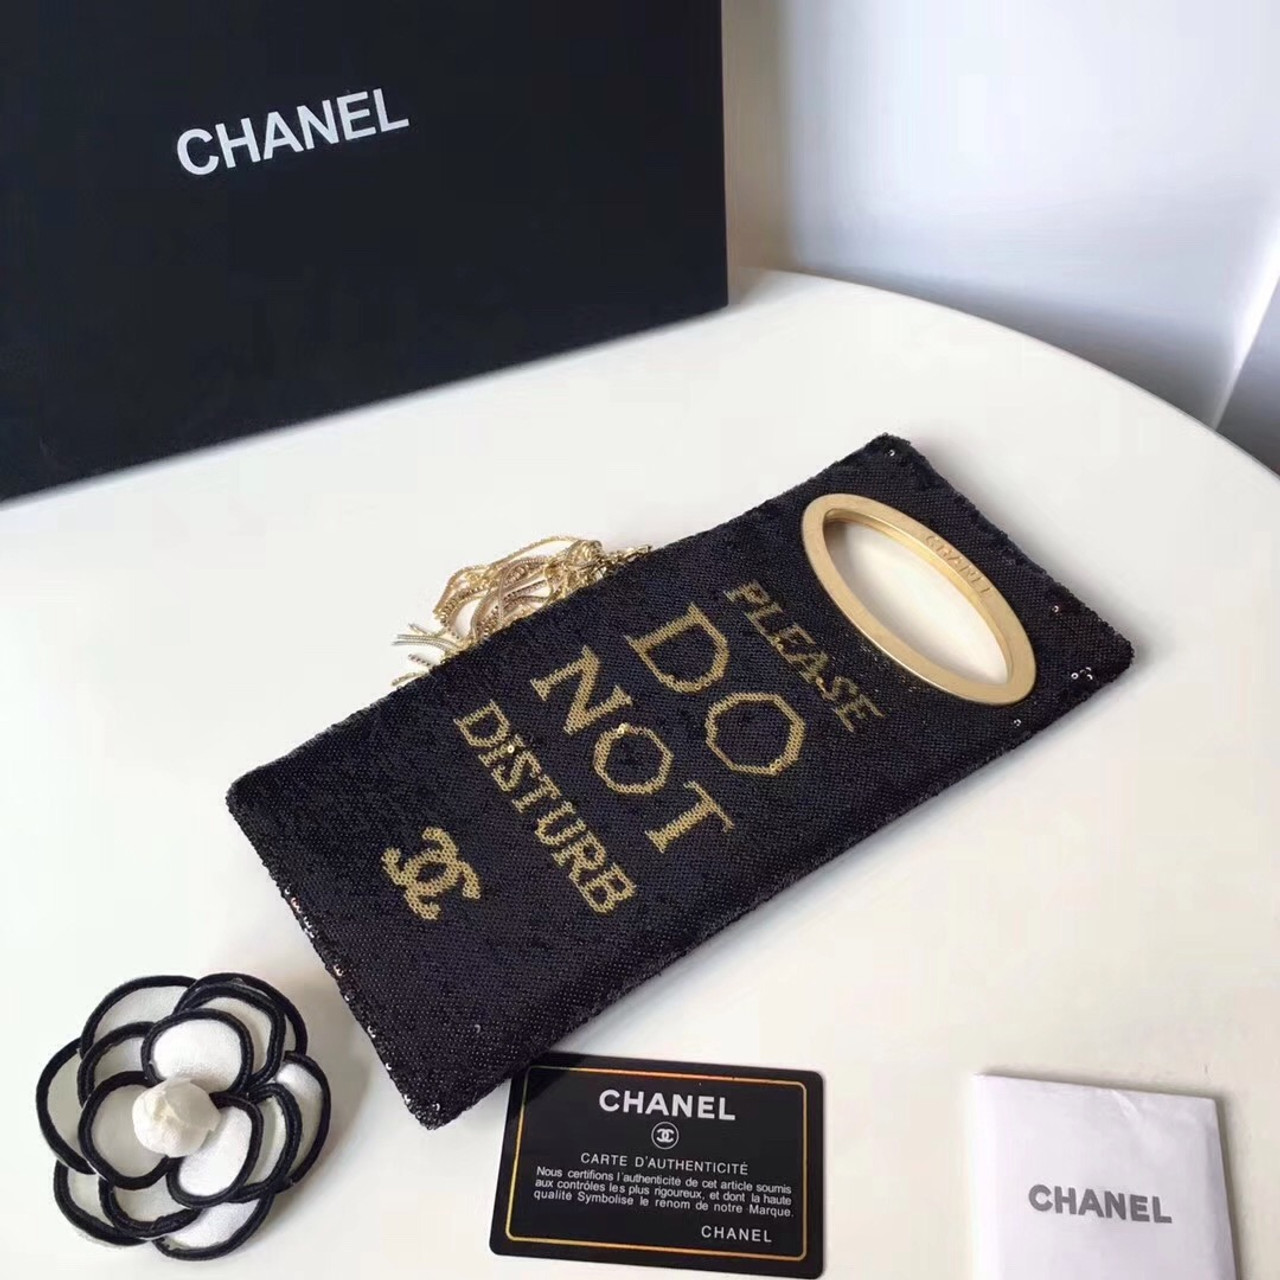 818e34a29e6e Chanel Please Do Not Disturb Clutch Bag - Bella Vita Moda